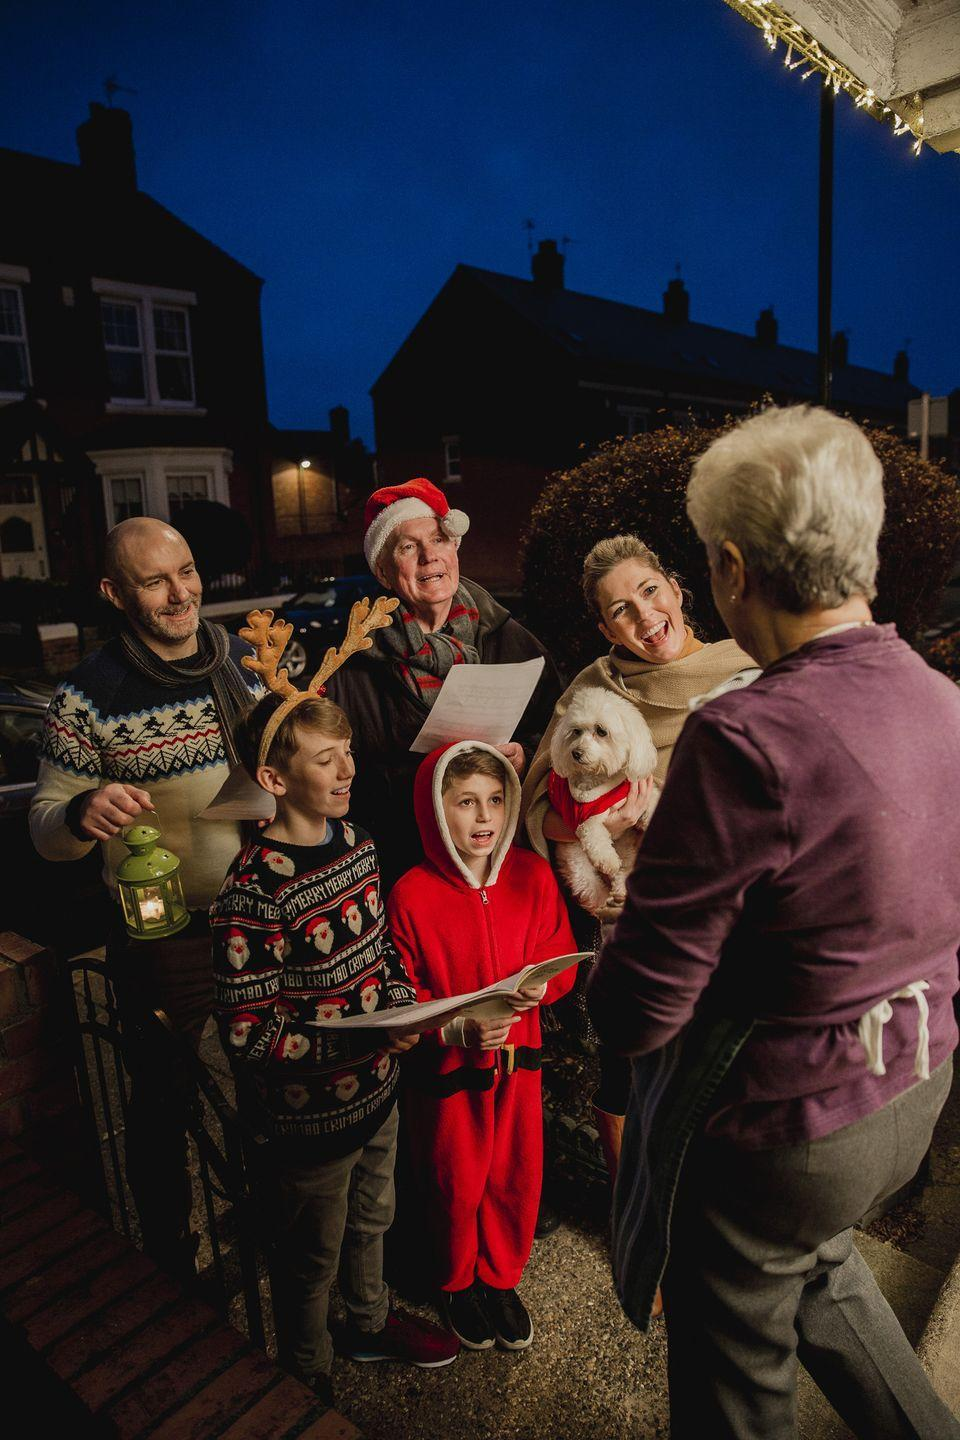 """<p>Round up friends and family to make your very own chorus of carolers and surprise your neighbors with some holiday entertainment at their doorstep. You can also record and send video messages to share virtual Christmas cheer!</p><p><a class=""""link rapid-noclick-resp"""" href=""""https://www.amazon.com/Christmas-Caroling-Songbook-2Nd/dp/1423414195/?tag=syn-yahoo-20&ascsubtag=%5Bartid%7C10050.g.25411840%5Bsrc%7Cyahoo-us"""" rel=""""nofollow noopener"""" target=""""_blank"""" data-ylk=""""slk:SHOP SONGBOOKS"""">SHOP SONGBOOKS</a></p>"""